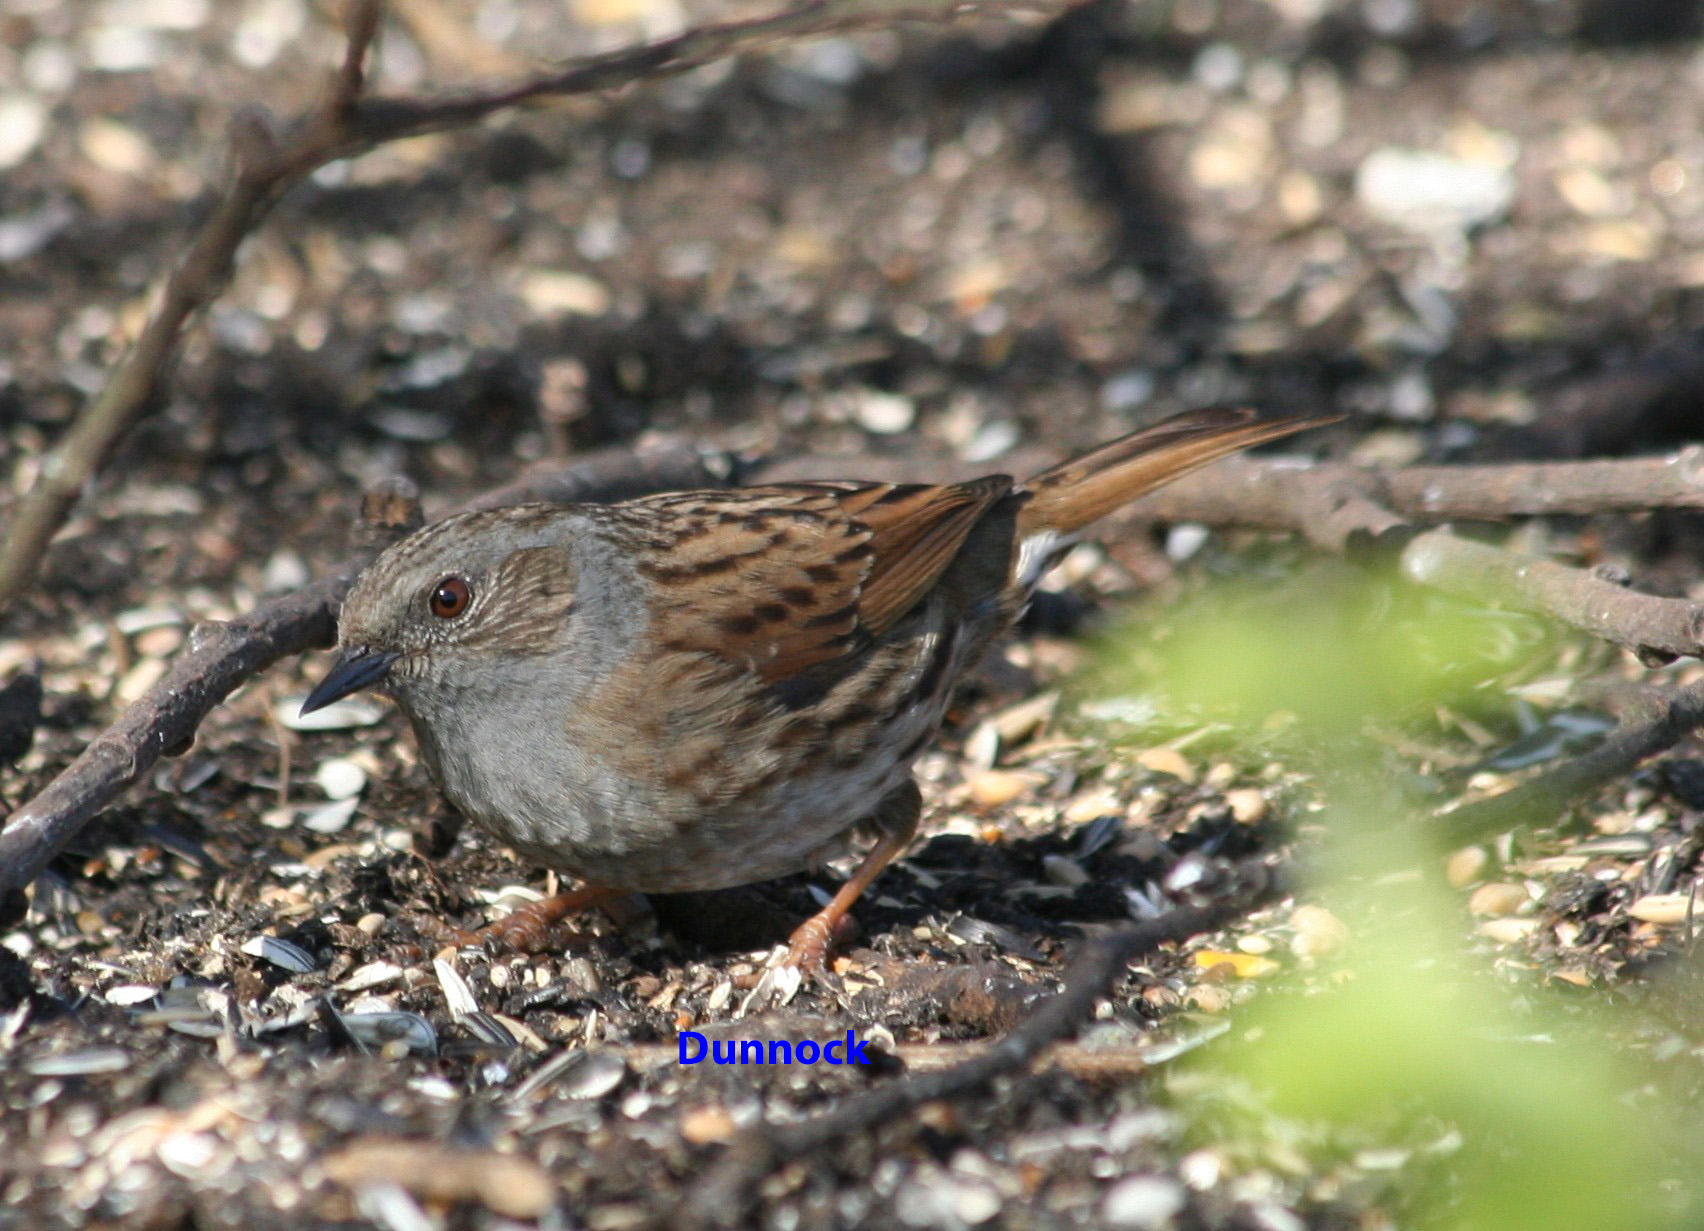 hedge-sparrow-under-feeders-april-2010-11-581f0e40a2d4e6b871e95618e254e2e98a03150c